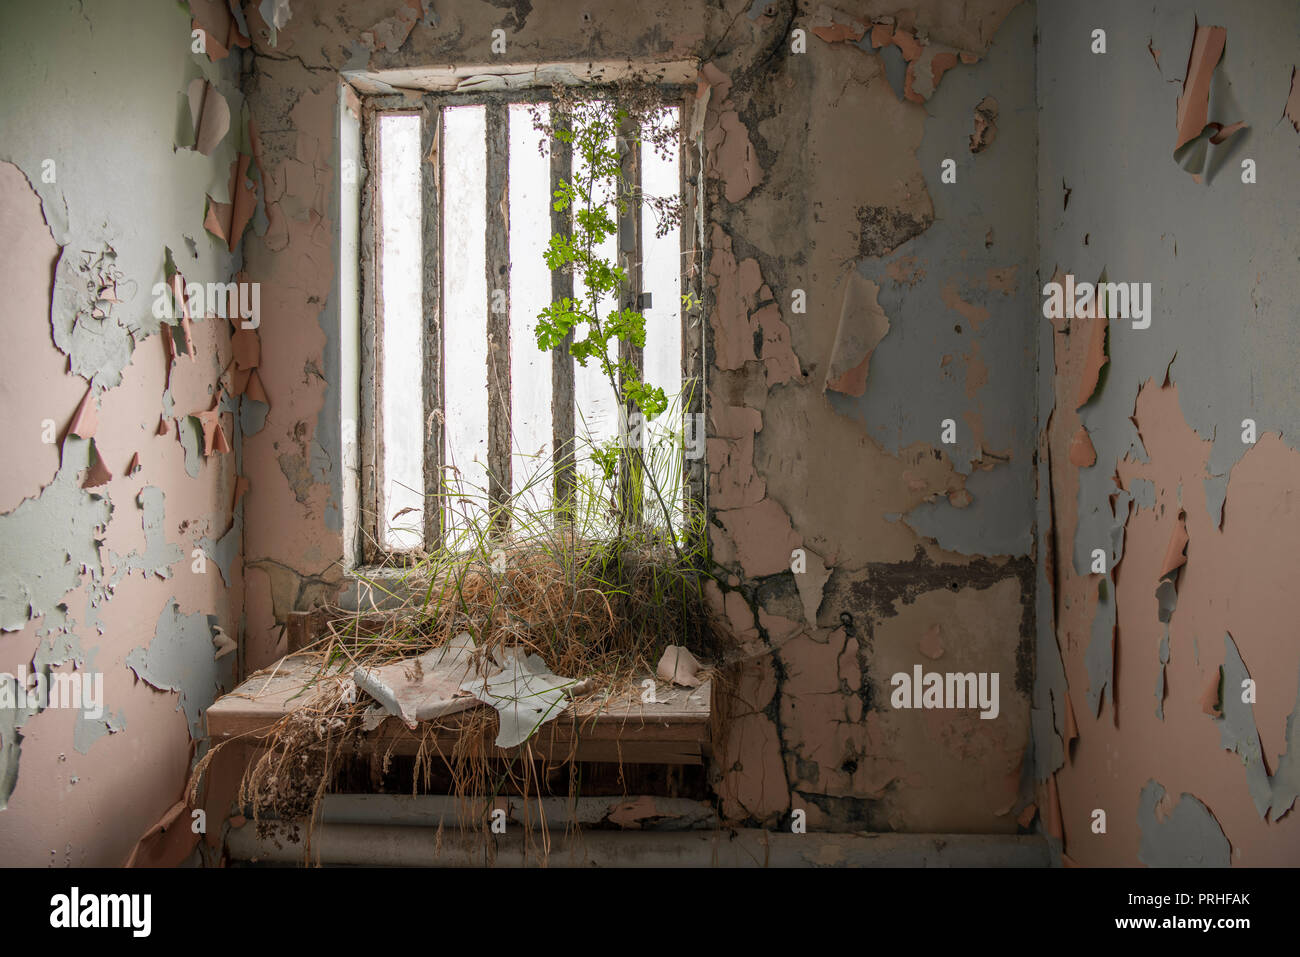 Weeds growing inside a prison cell at an abandoned prison. - Stock Image